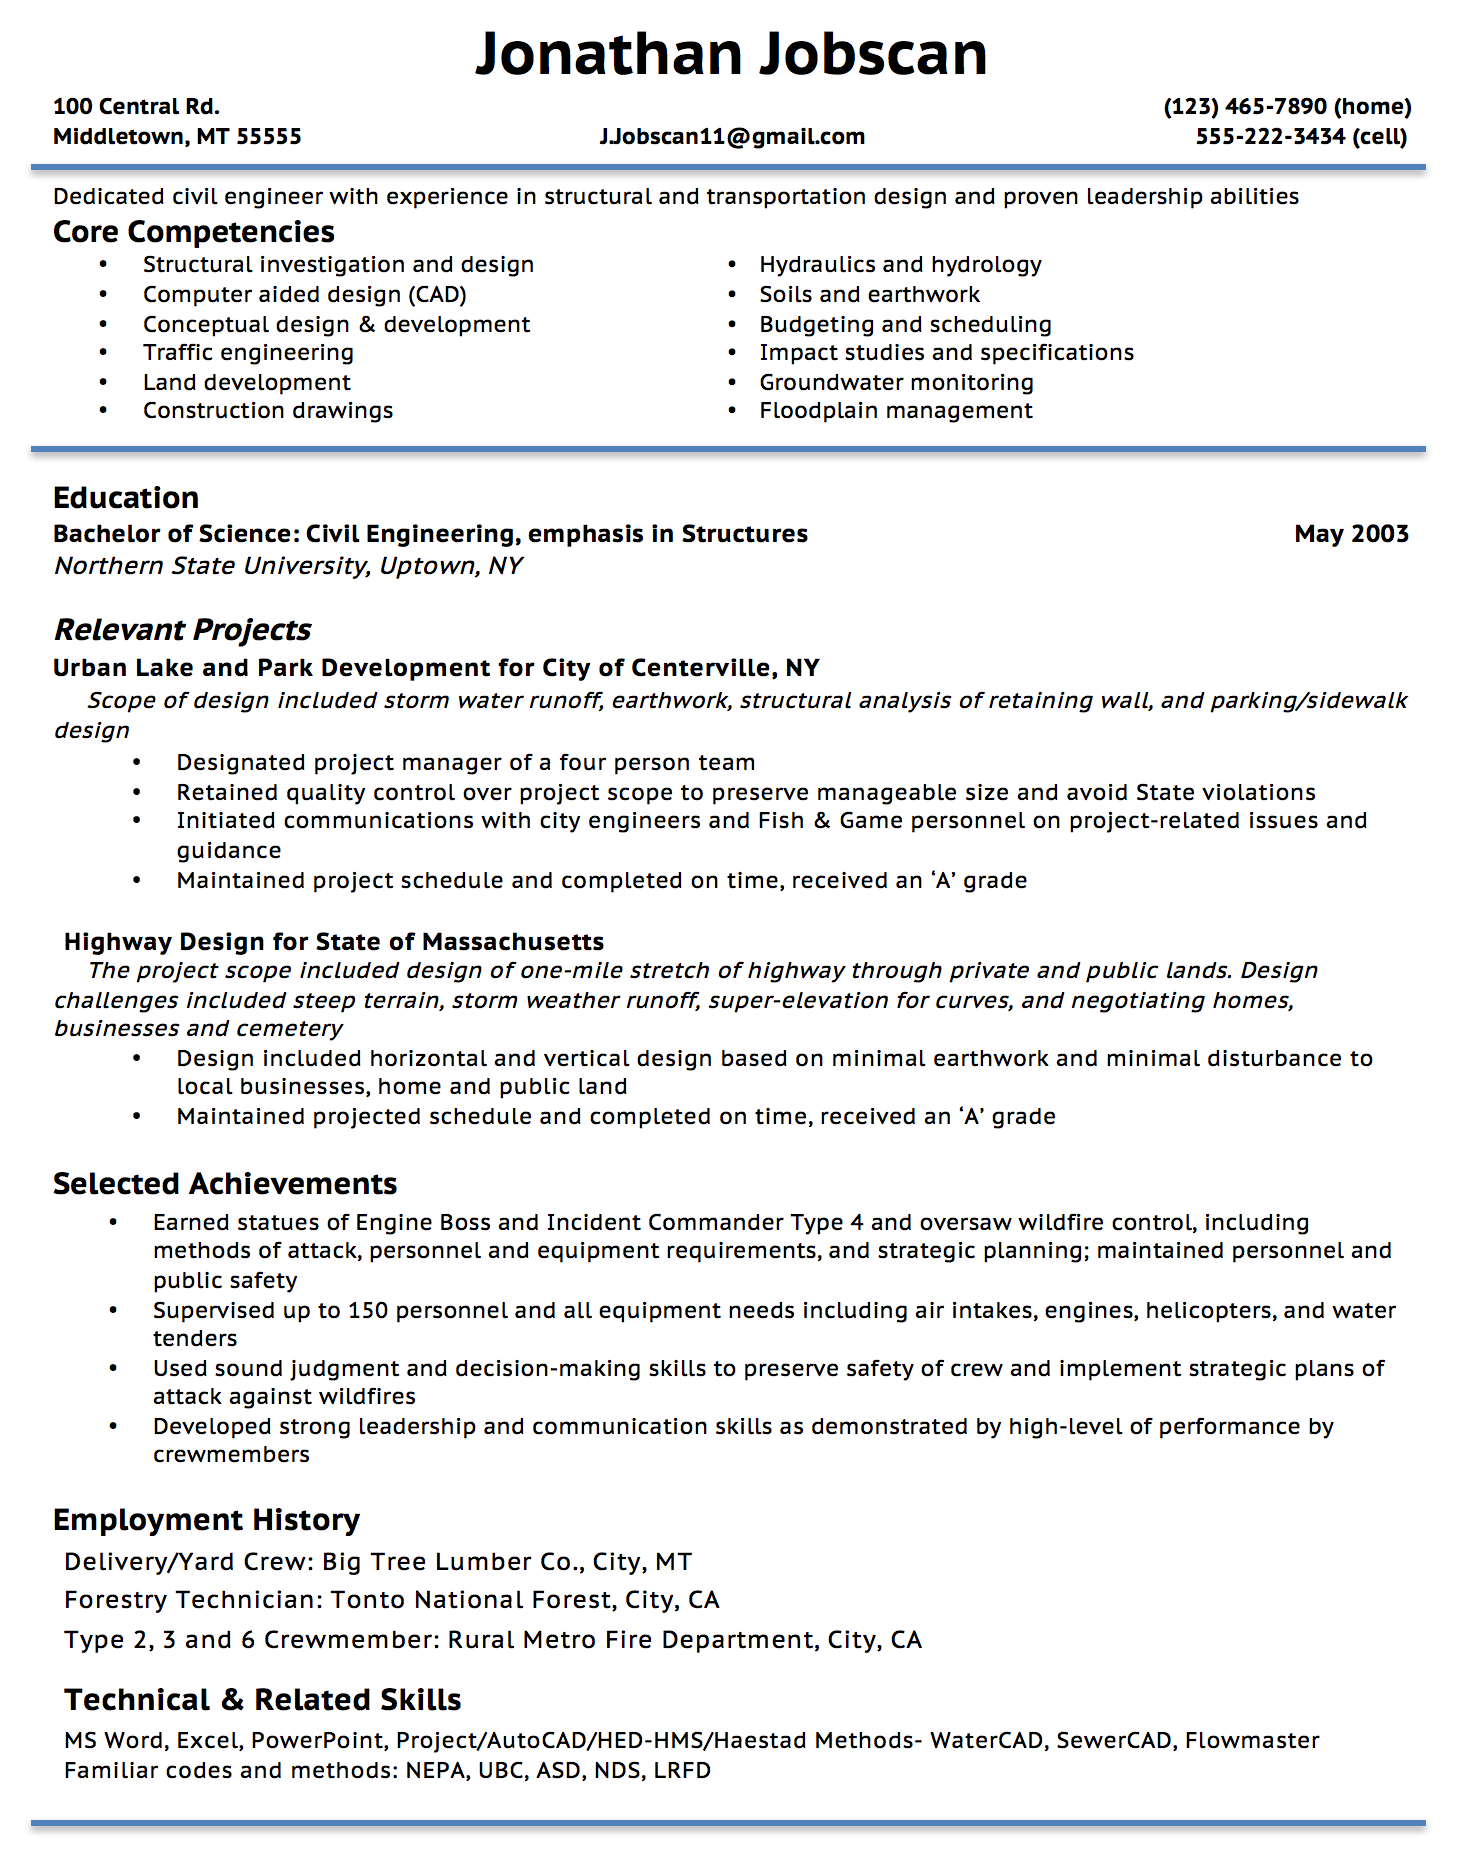 Opposenewapstandardsus  Winsome Resume Writing Guide  Jobscan With Likable Example Of A Functional Resume Format With Easy On The Eye Create A Resume In Word Also How To Create The Best Resume In Addition Resume Template Samples And Job Hopping Resume As Well As Machine Operator Resume Sample Additionally Sample Resumes For Administrative Assistant From Jobscanco With Opposenewapstandardsus  Likable Resume Writing Guide  Jobscan With Easy On The Eye Example Of A Functional Resume Format And Winsome Create A Resume In Word Also How To Create The Best Resume In Addition Resume Template Samples From Jobscanco